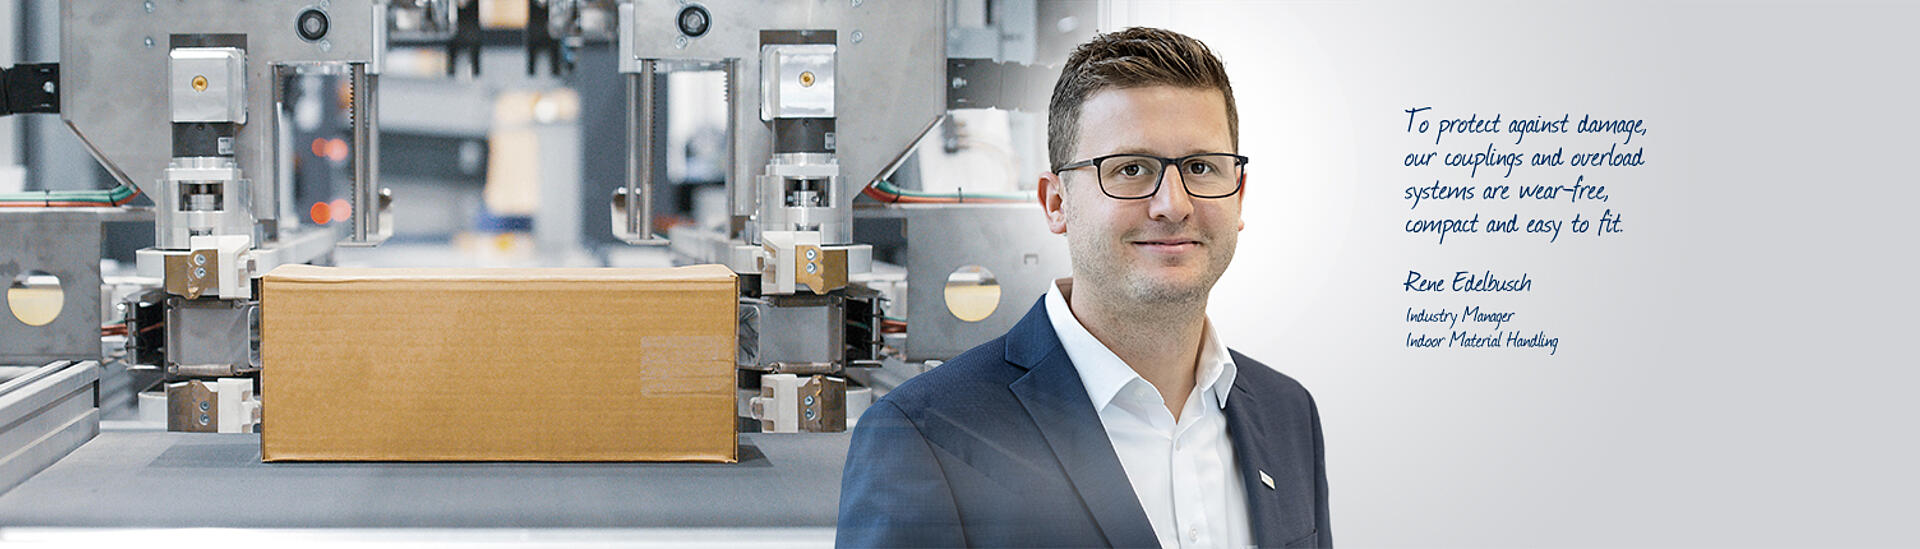 Contact person - industry Indoor Material Handling – KTR Systems GmbH